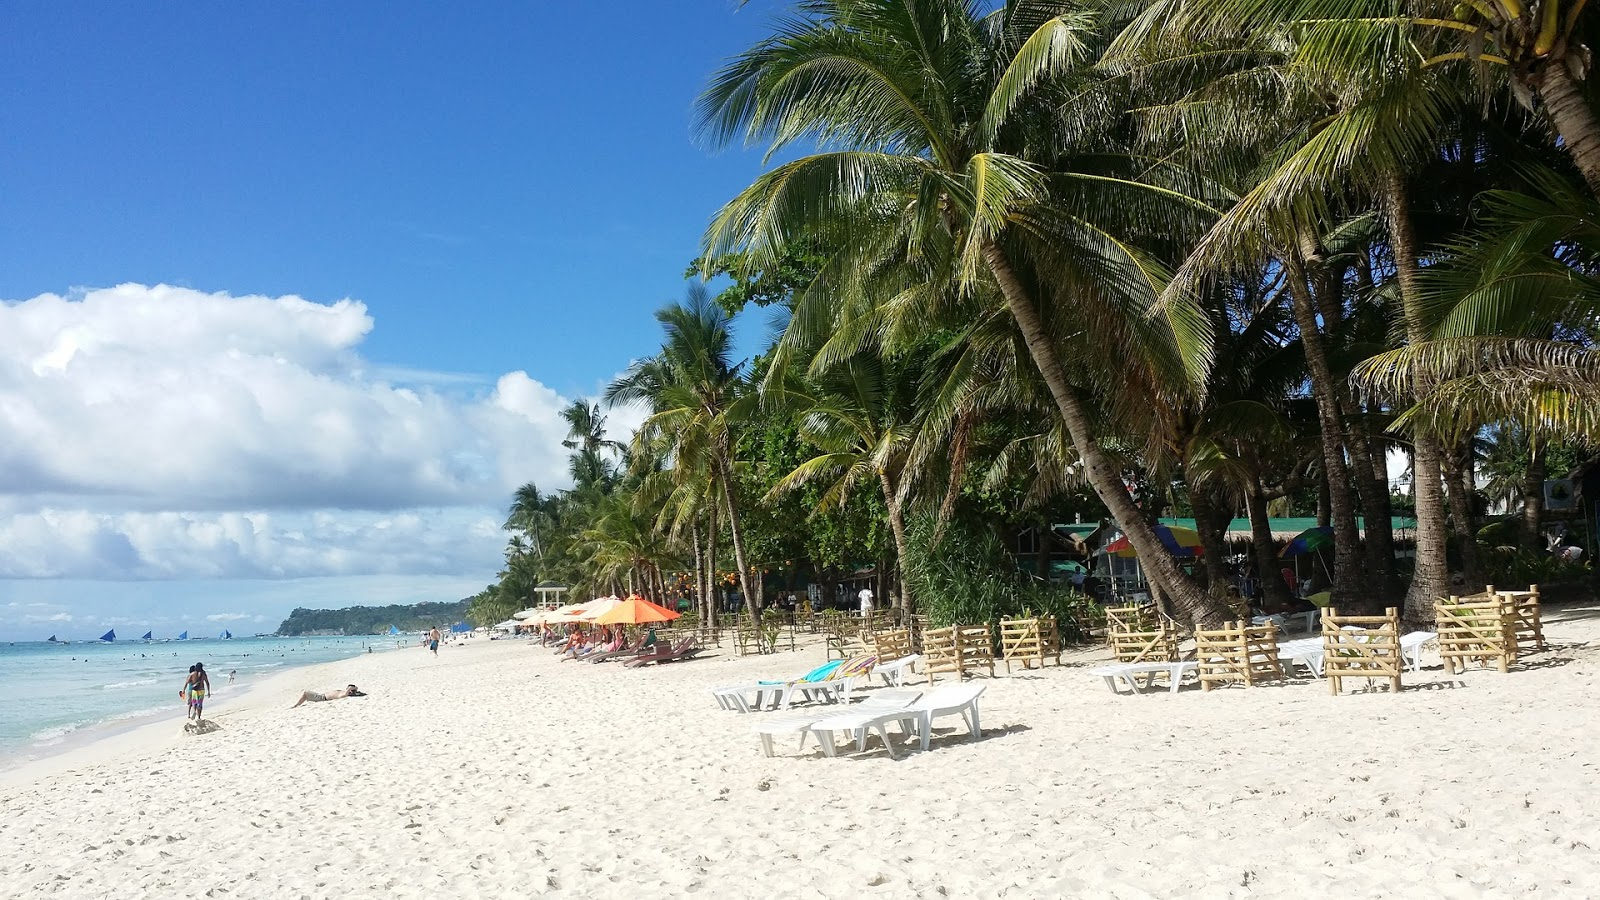 Daily News | Living and Loving Philippines: Boracay Might